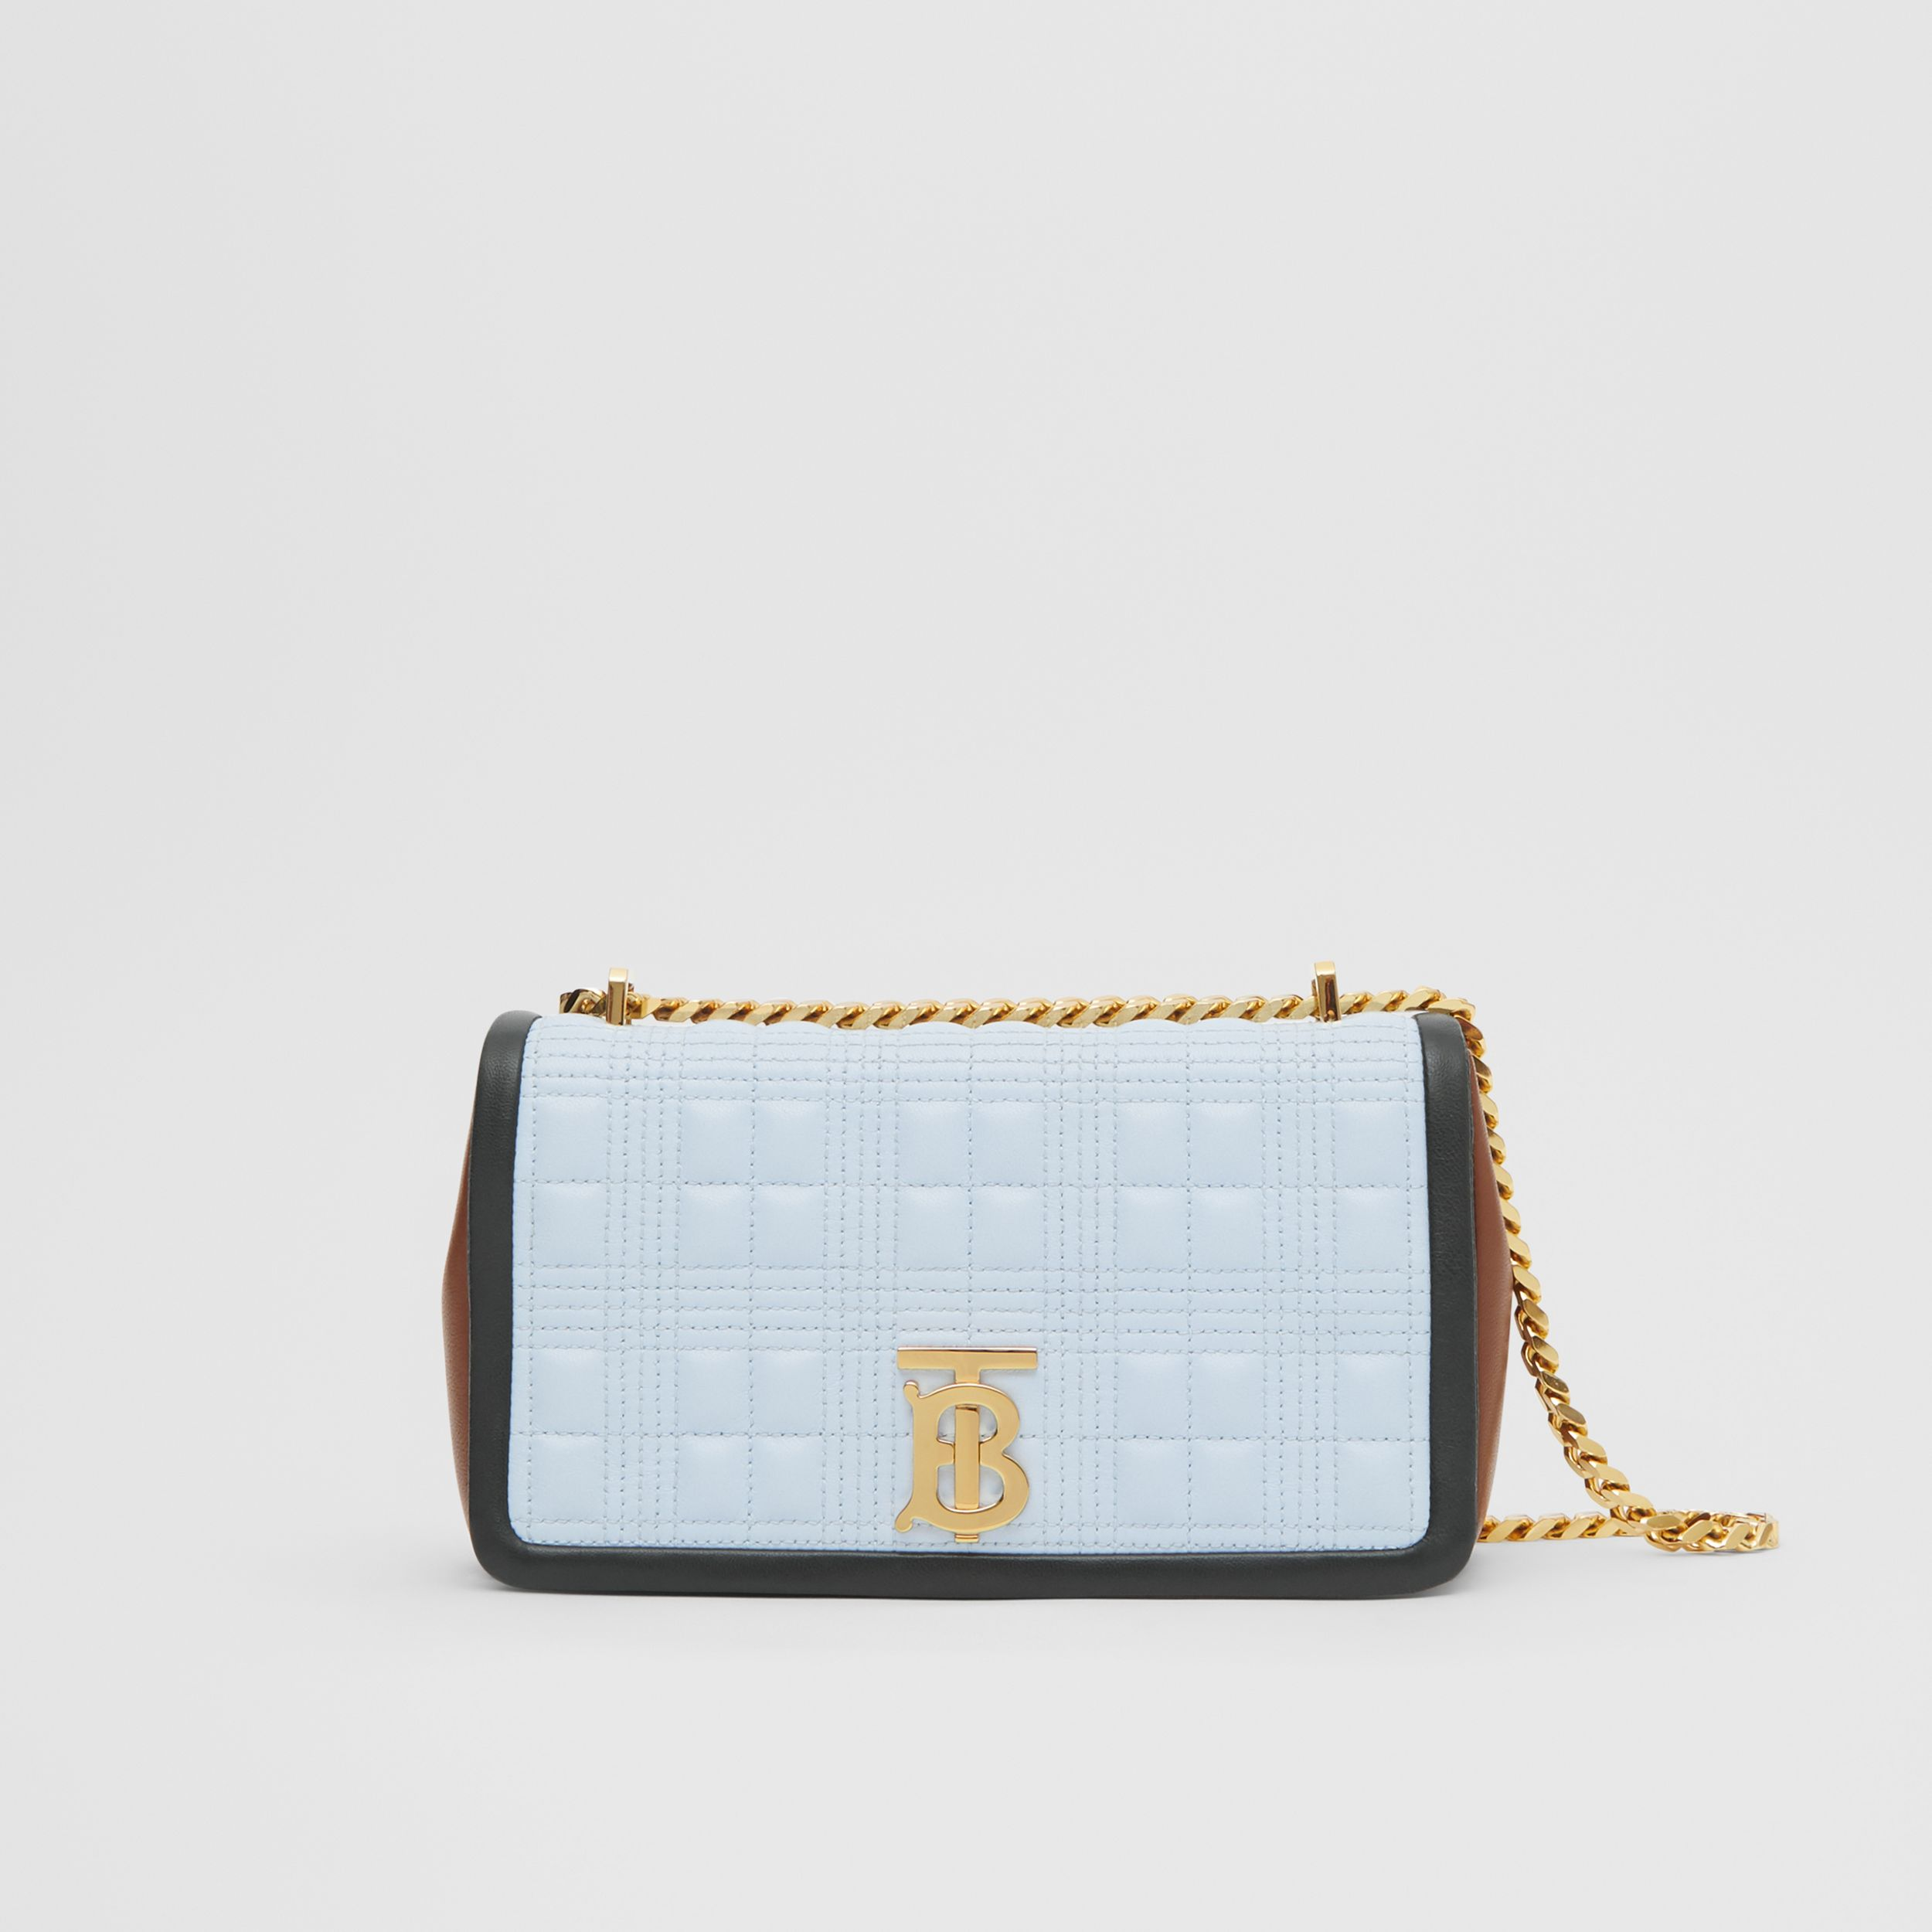 Small Quilted Tri-tone Lambskin Lola Bag in Pale Blue/dark Pine - Women | Burberry - 1